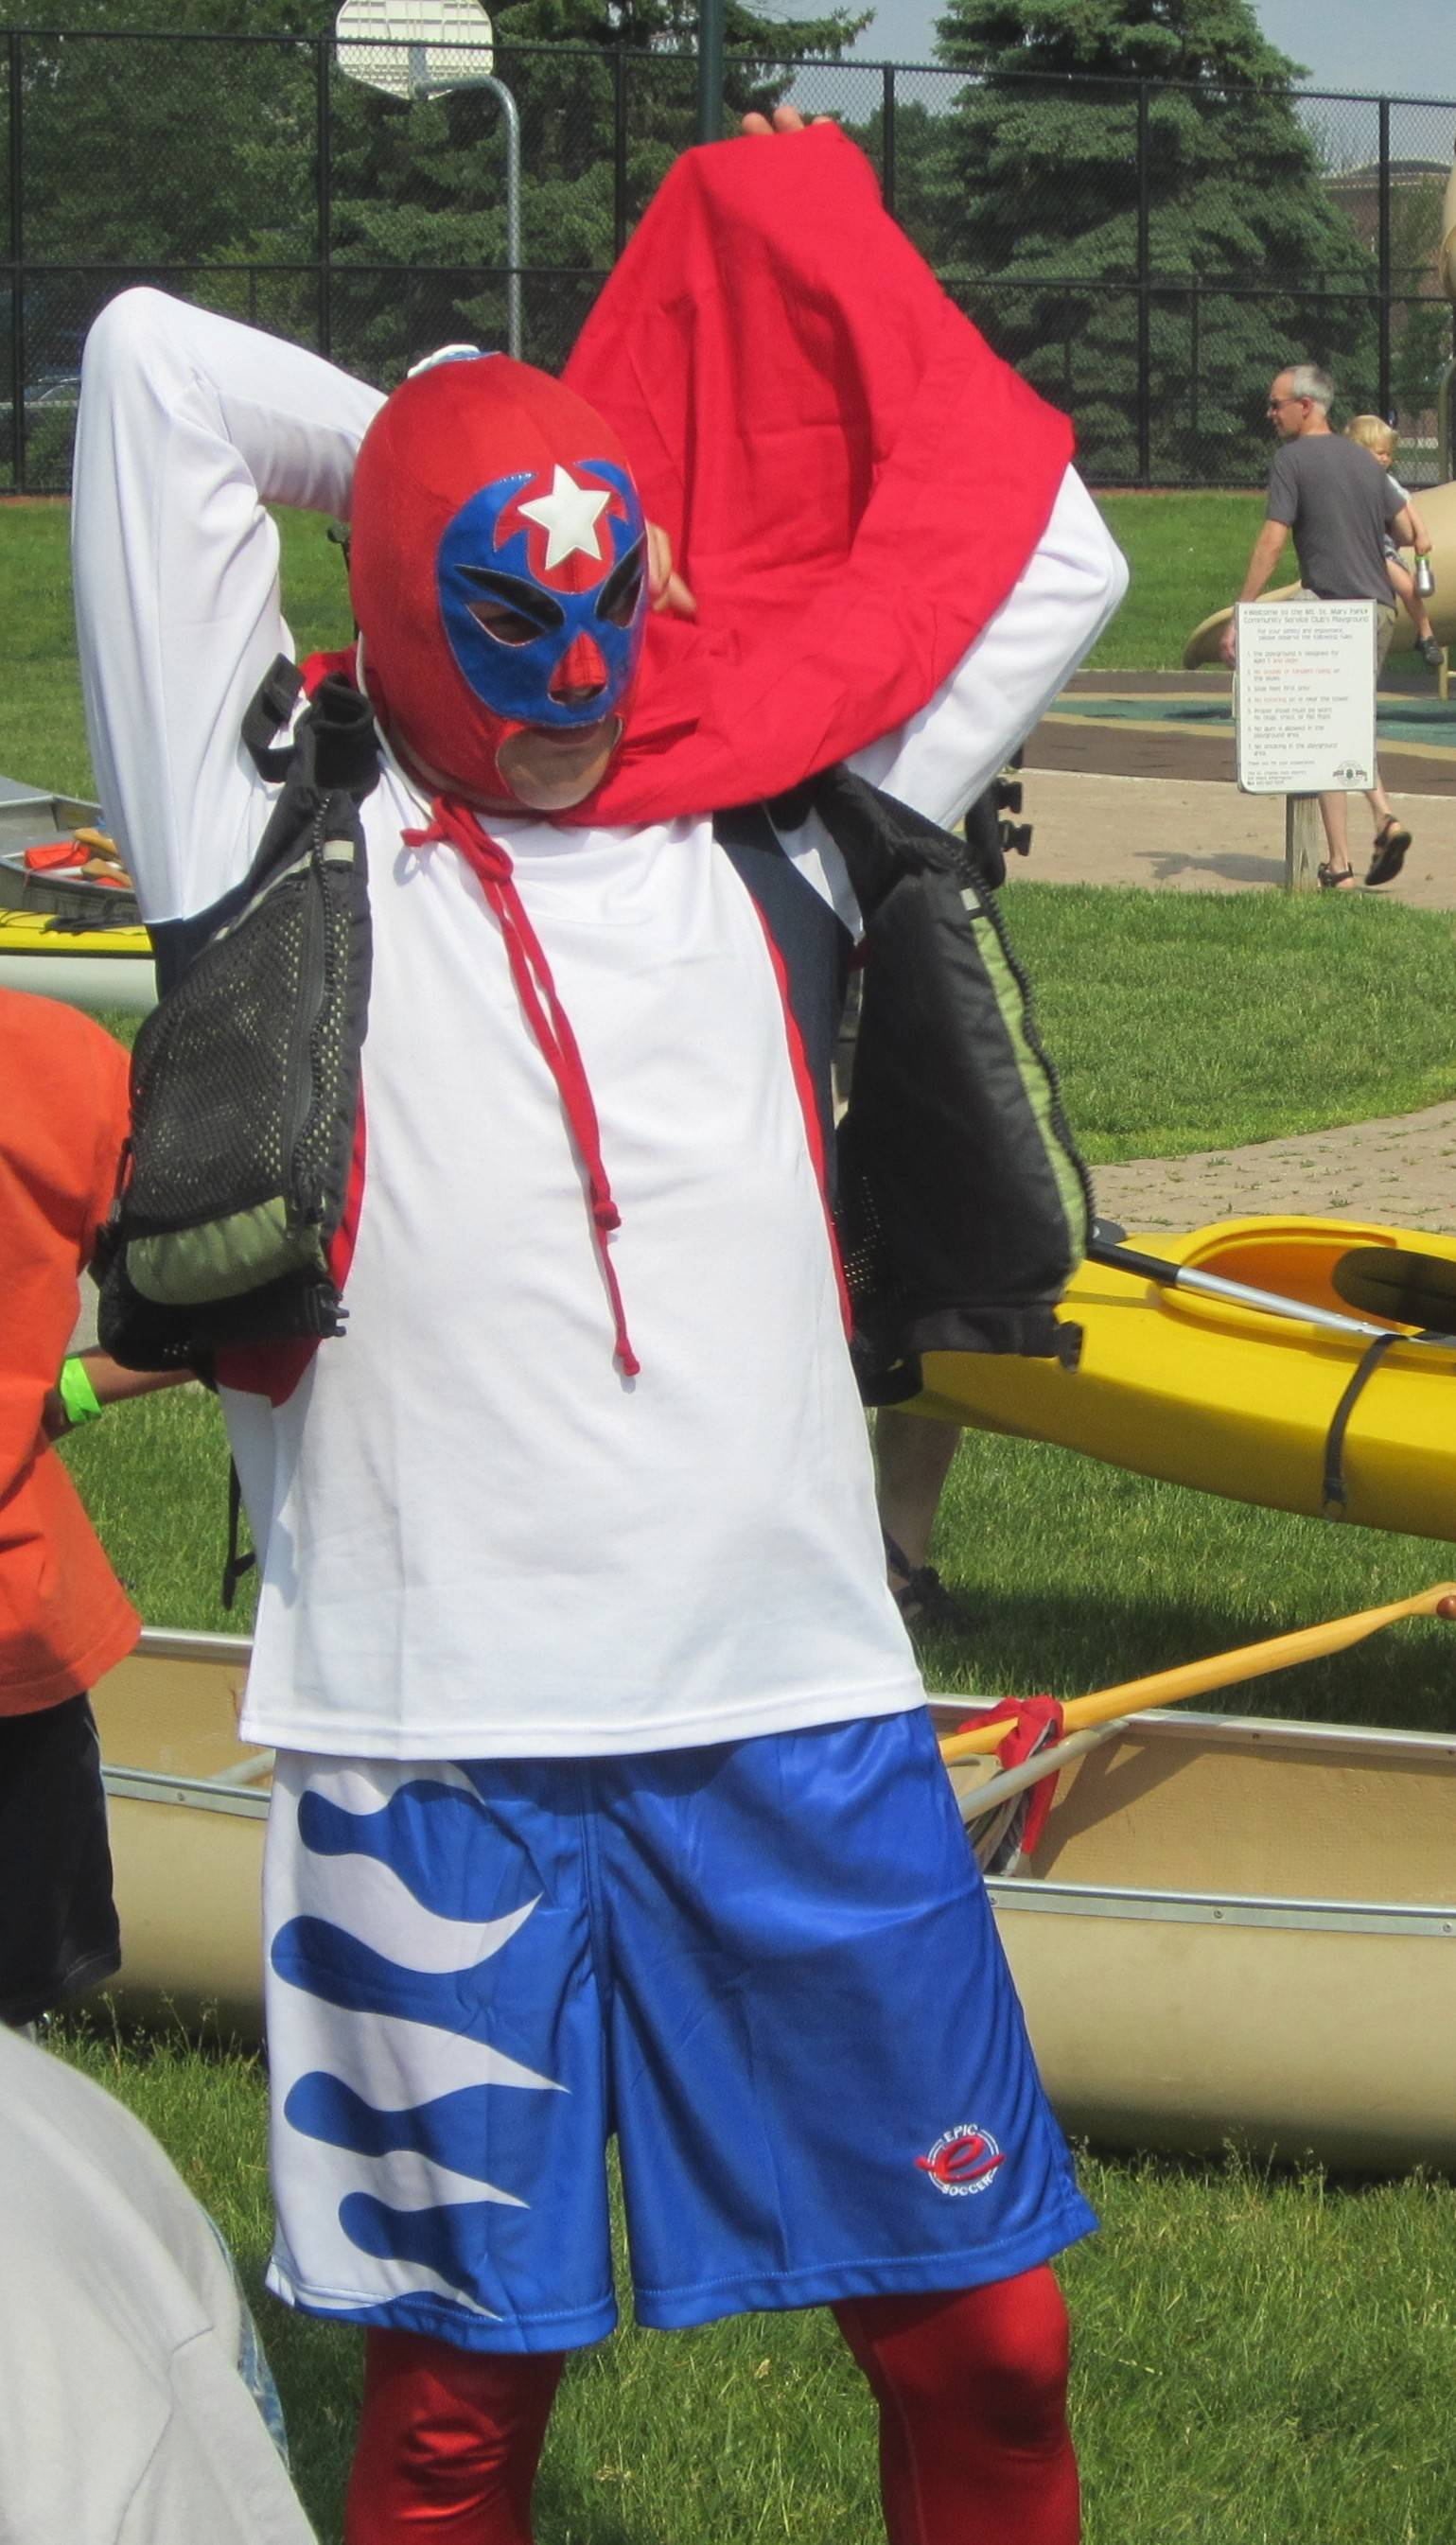 Wally Werderich of Yorkville, a longtime participant in the Mid-American Canoe and Kayak Race, arrived at Mount St. Mary Park in St. Charles on Sunday in a costume that resembled those worn by some professional wrestlers in Mexico.